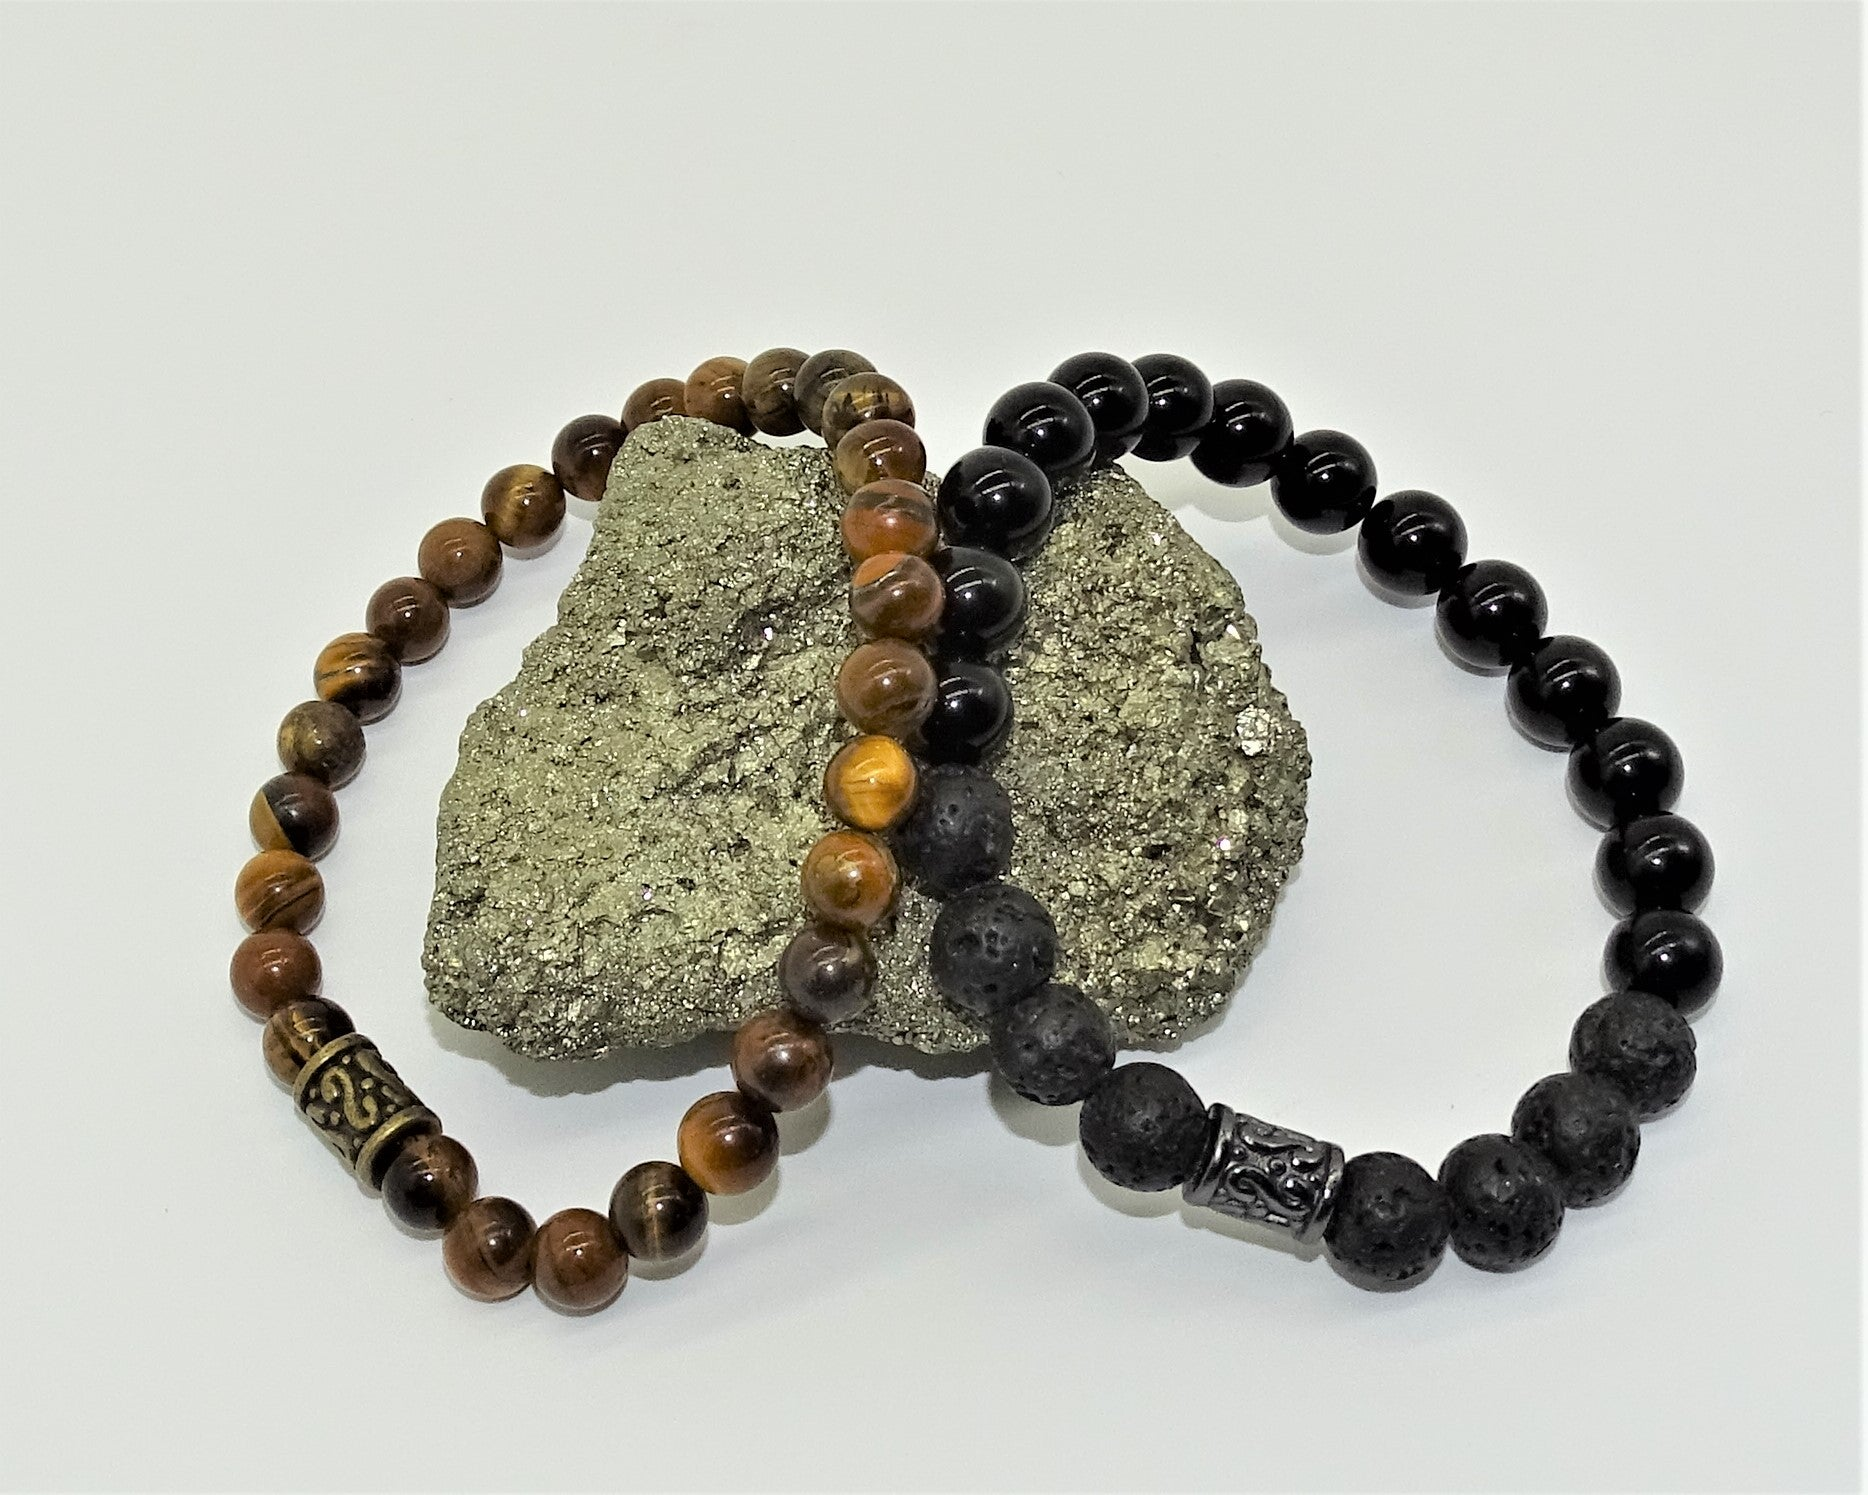 Tiger Eye - Protection, Grounding & Personal Power